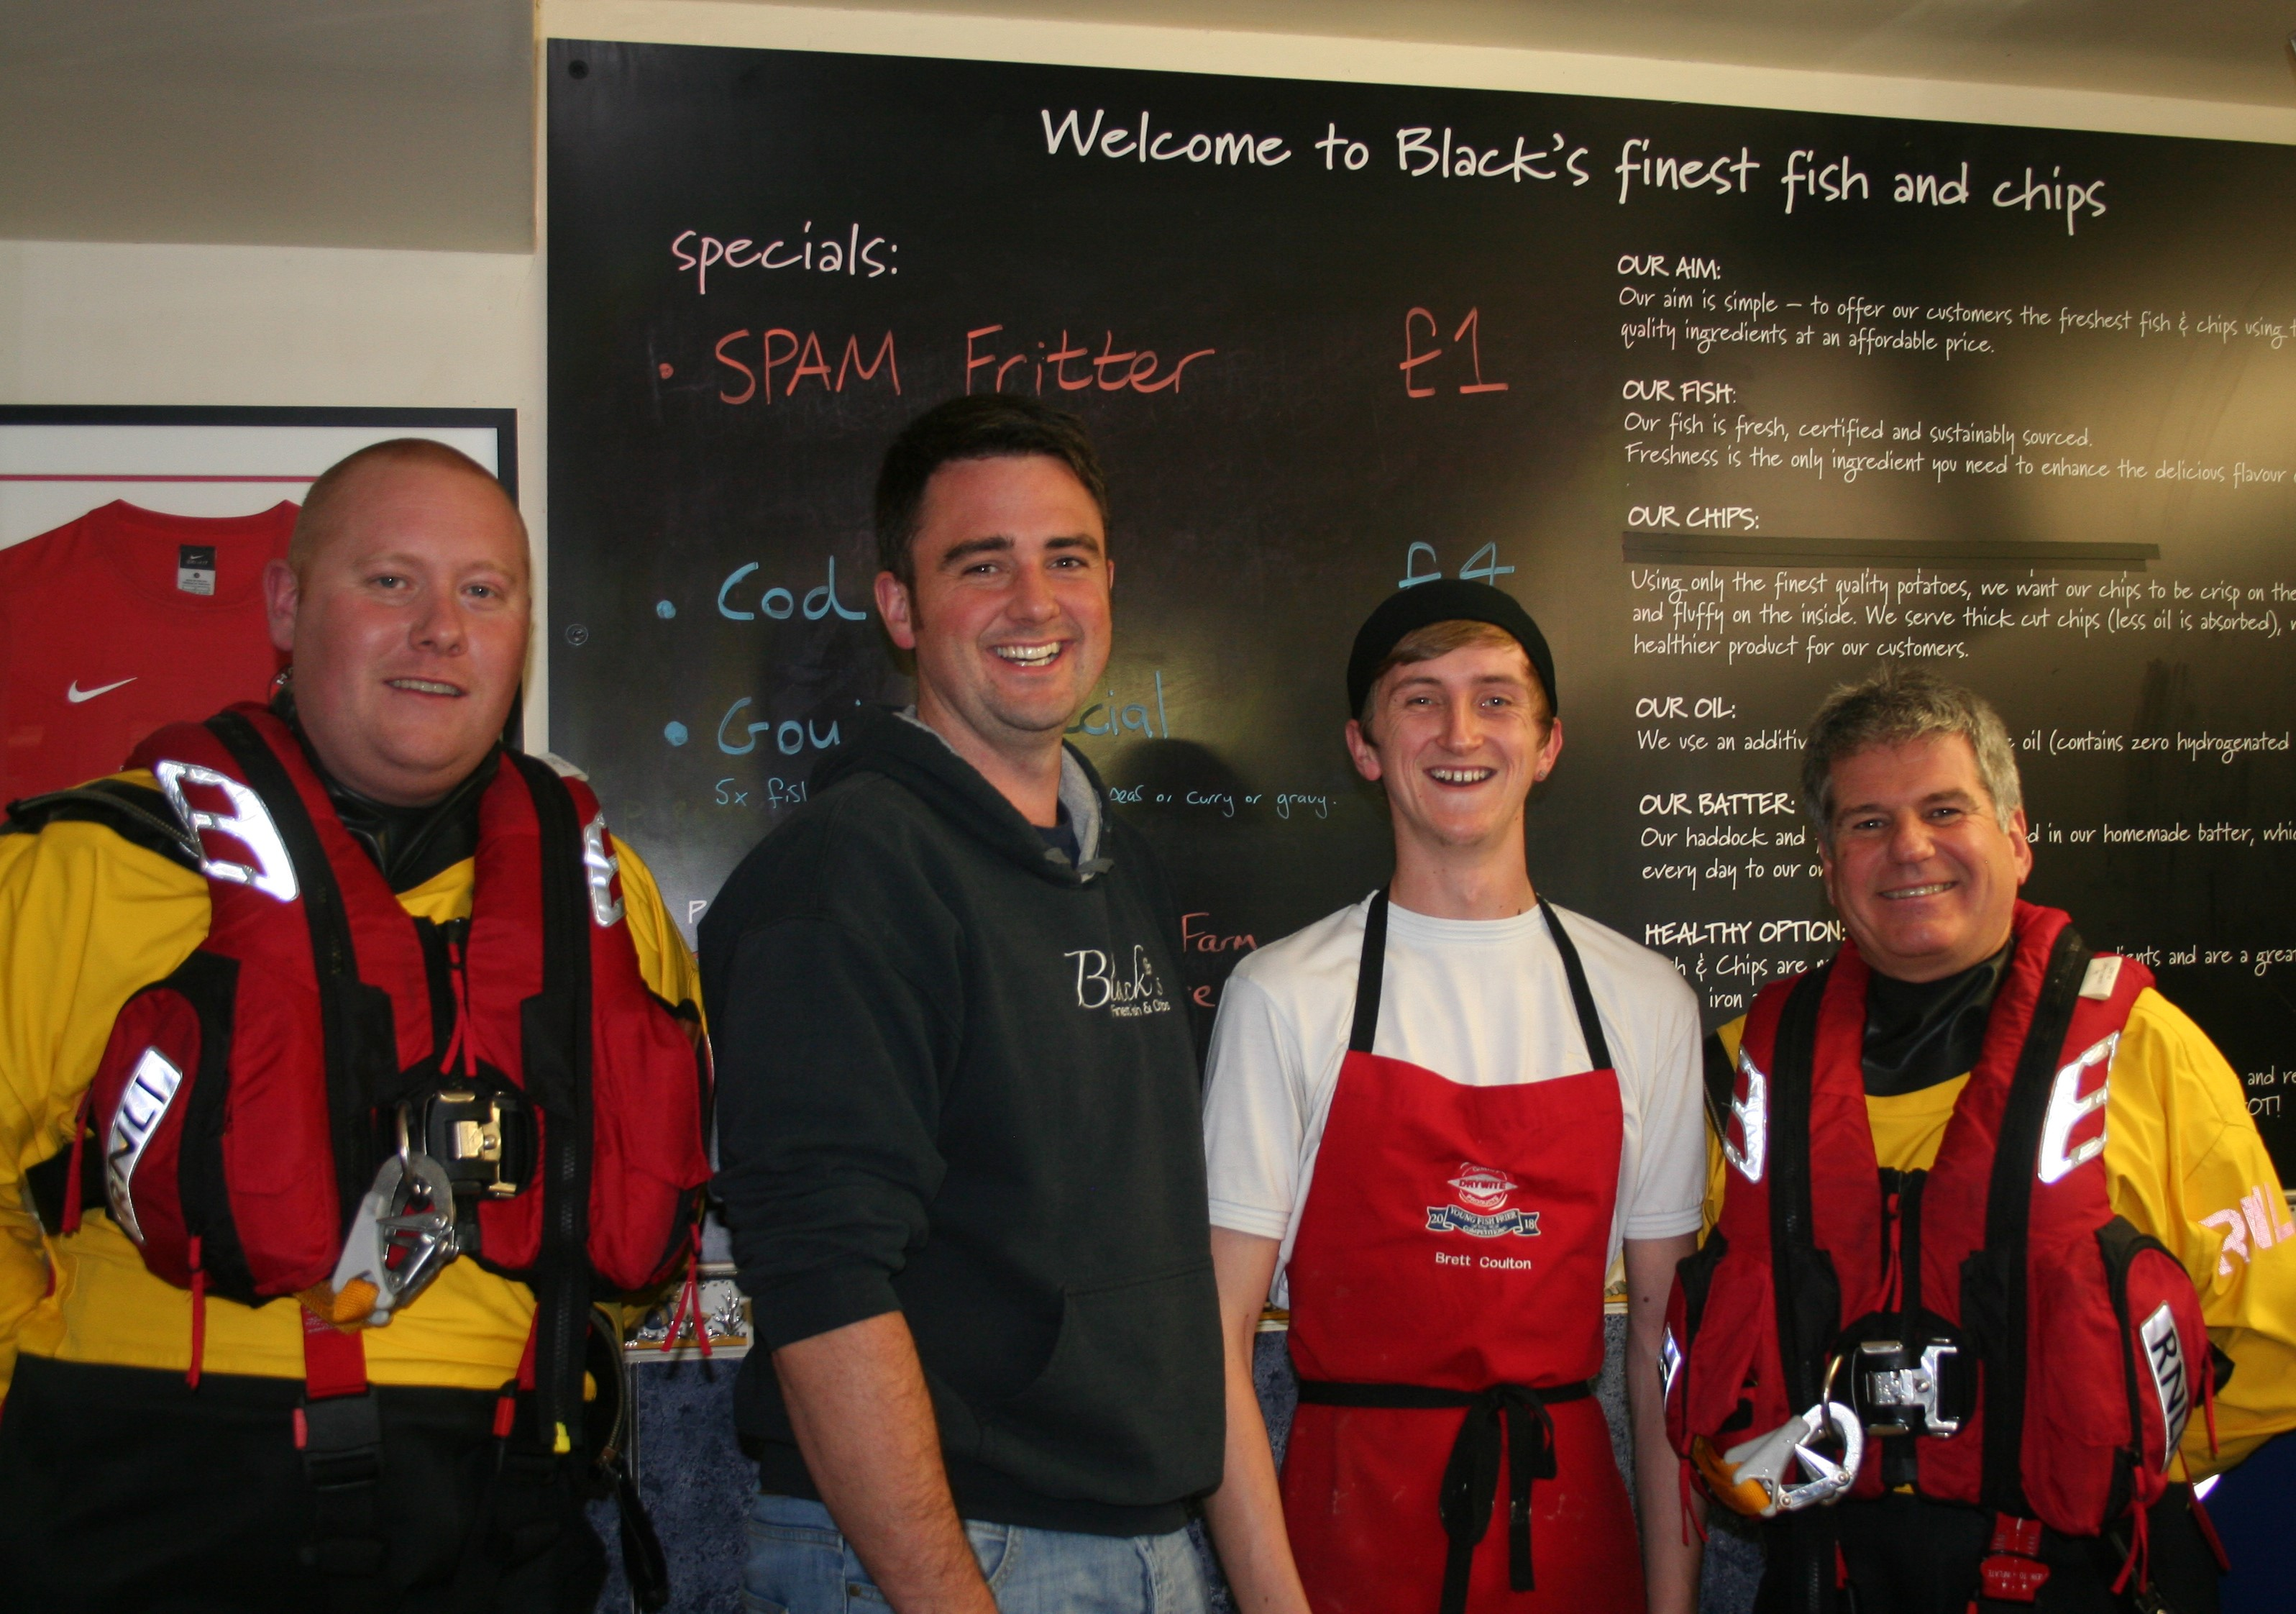 Morecambe lifeboat crew members James Donnell and Steve Wilson with Matthew Black and Brett Coulton